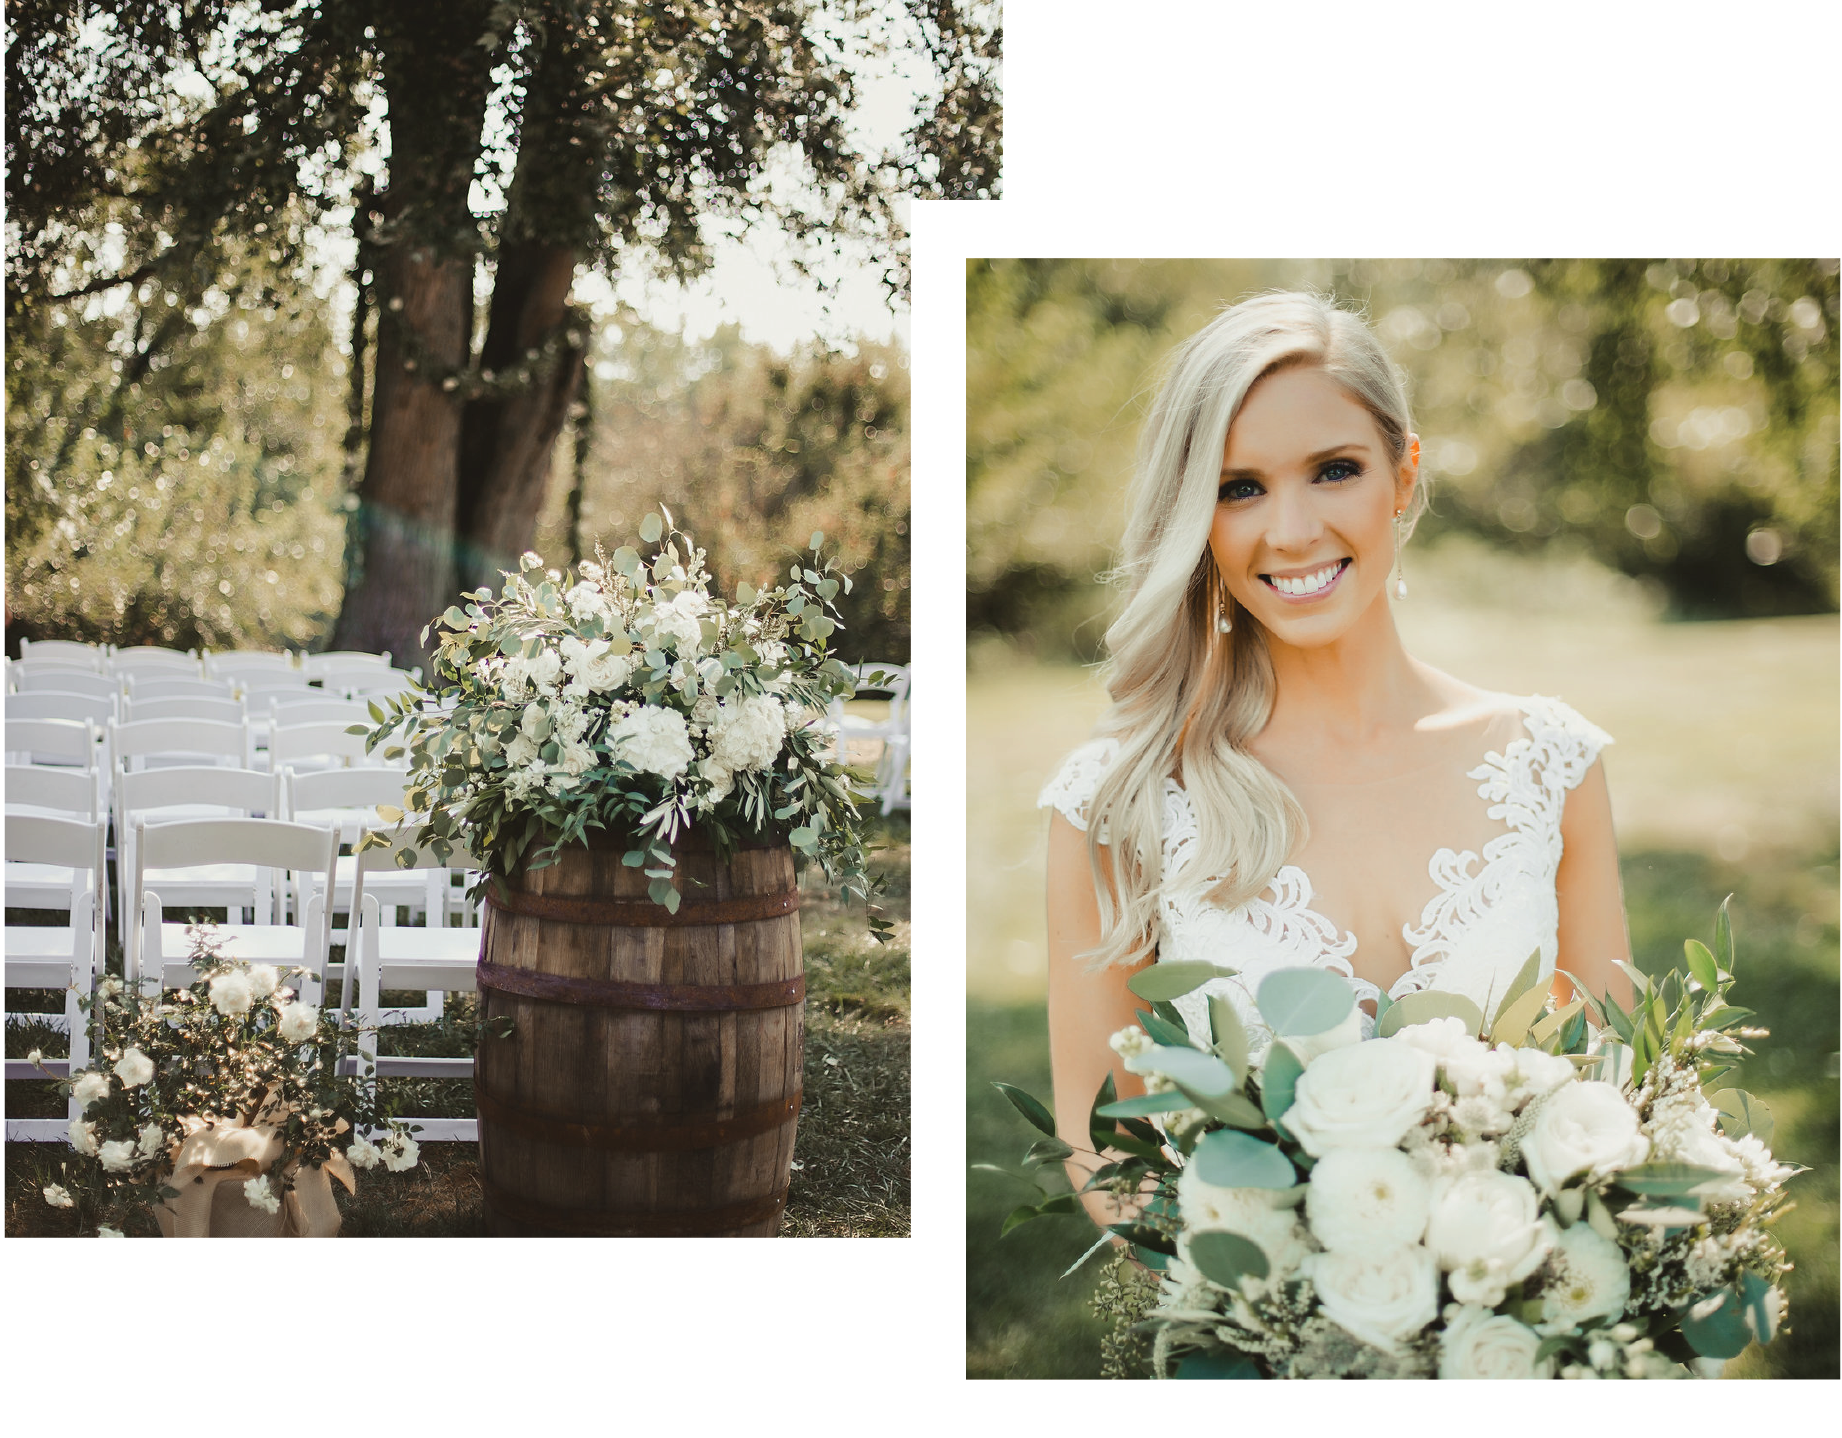 """Andrea with Bella Sorella was truly incredible. - She knocked my wedding out of the park! I live in San Francisco and got married in Noblesville, IN so I was really nervous about being able to meet vendors for our big day. Andrea put me at ease right away and FaceTimed me so I could meet her"